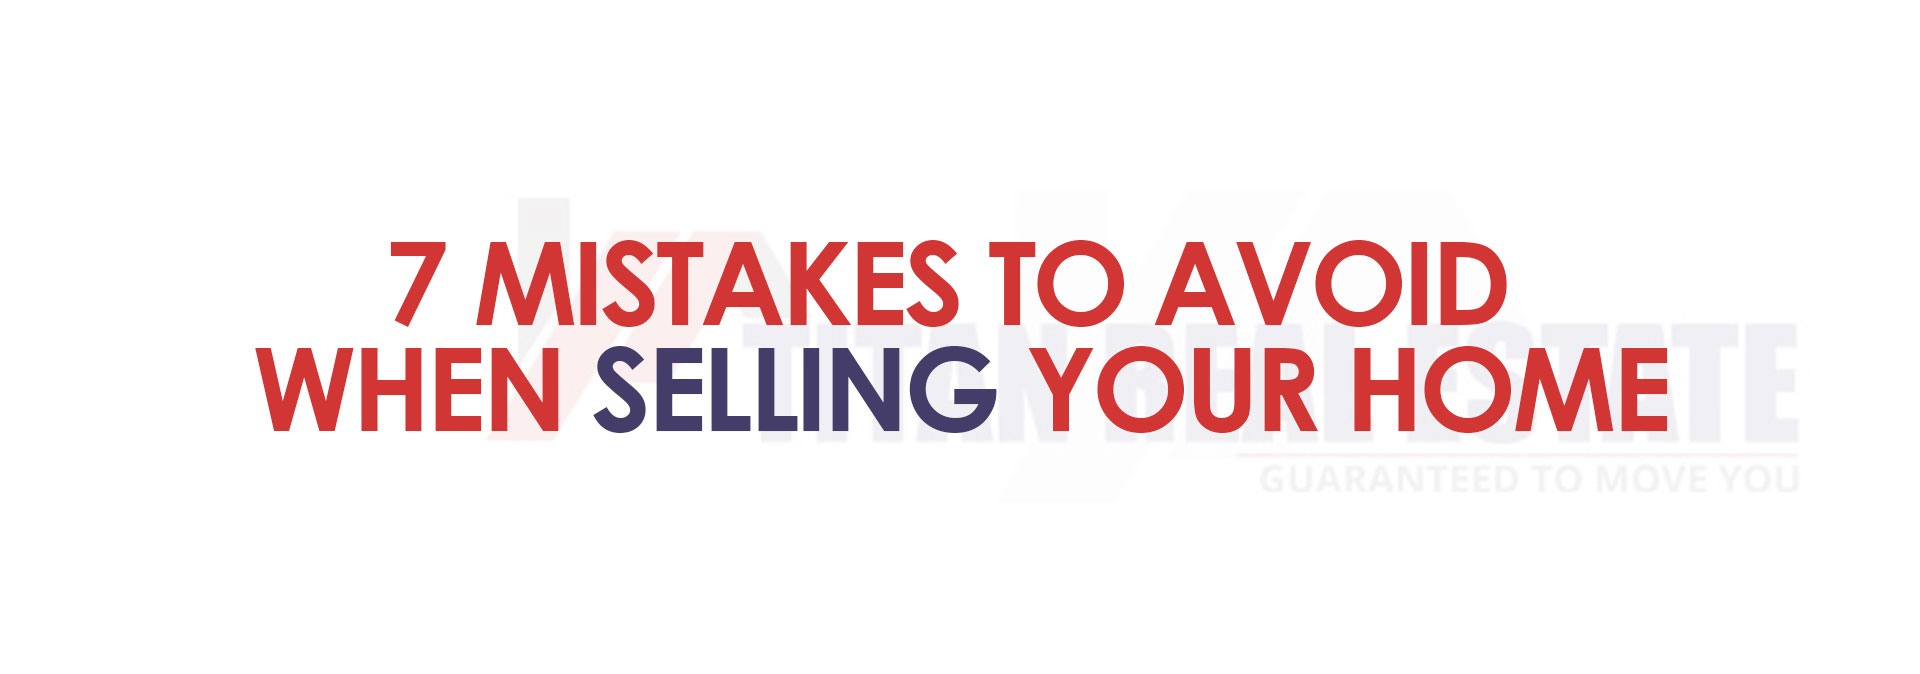 7 MISTAKES TO AVOID WHEN SELLING YOUR HOME